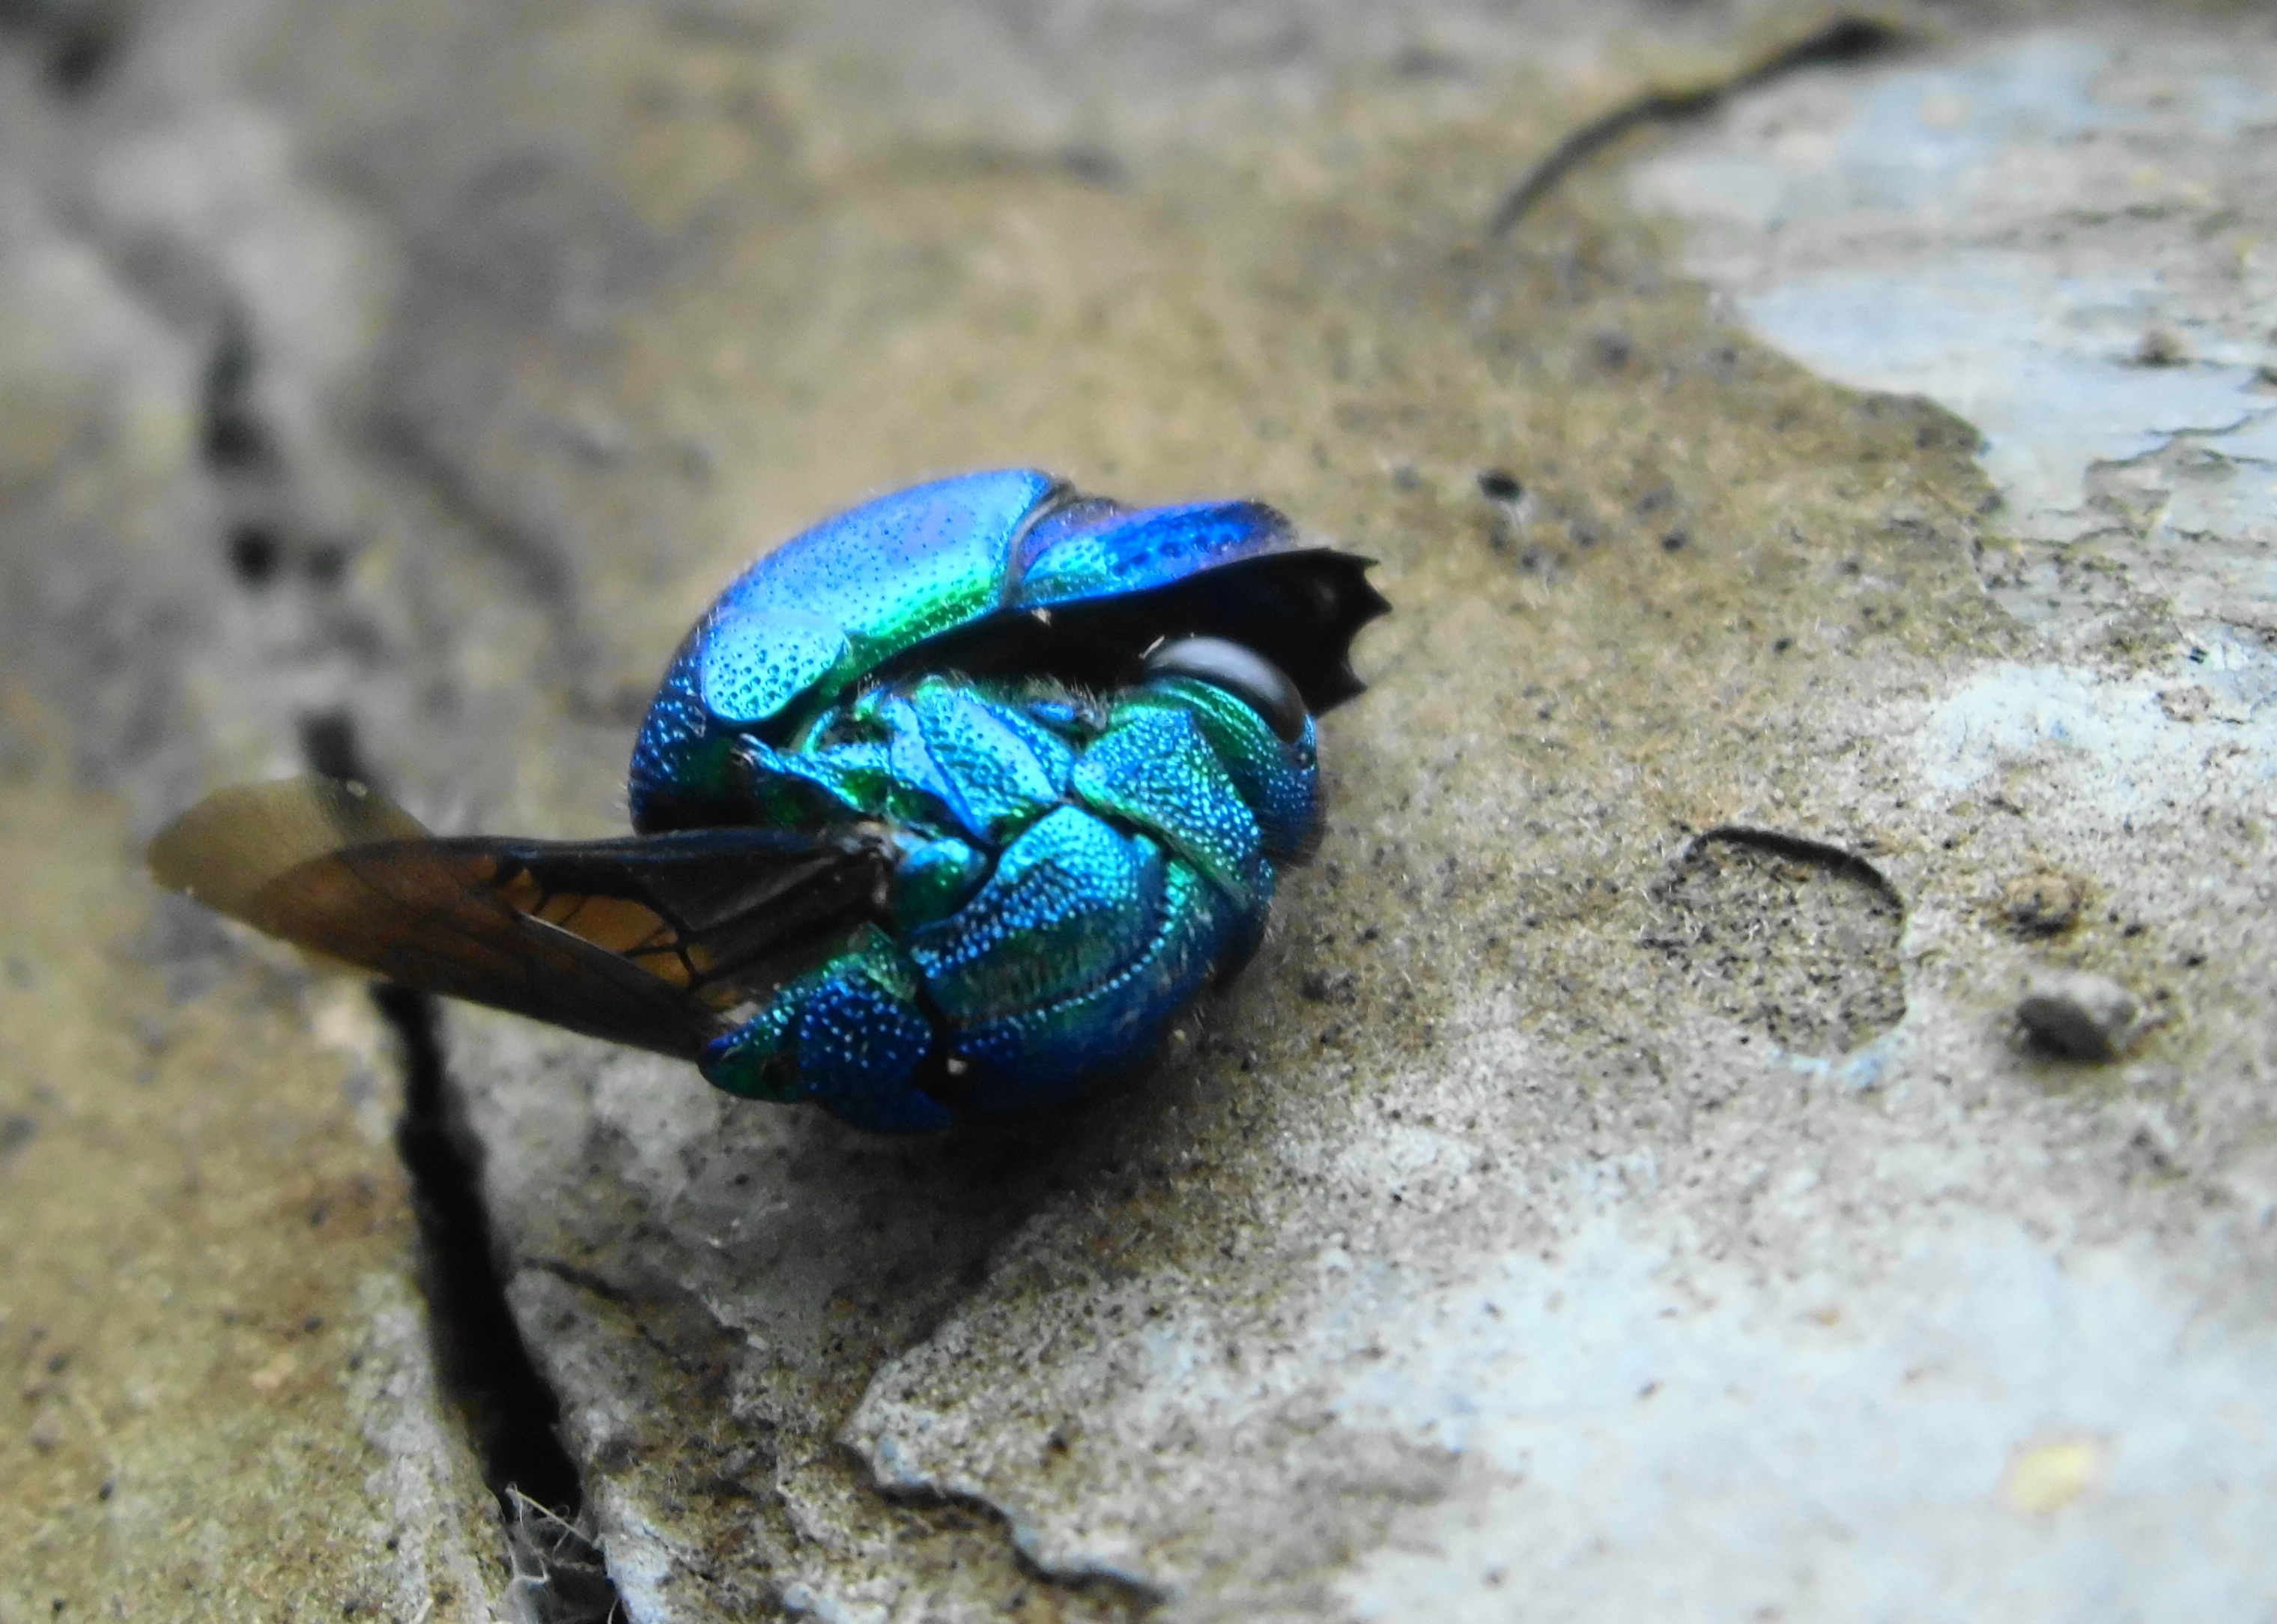 Cuckoo wasp curled up